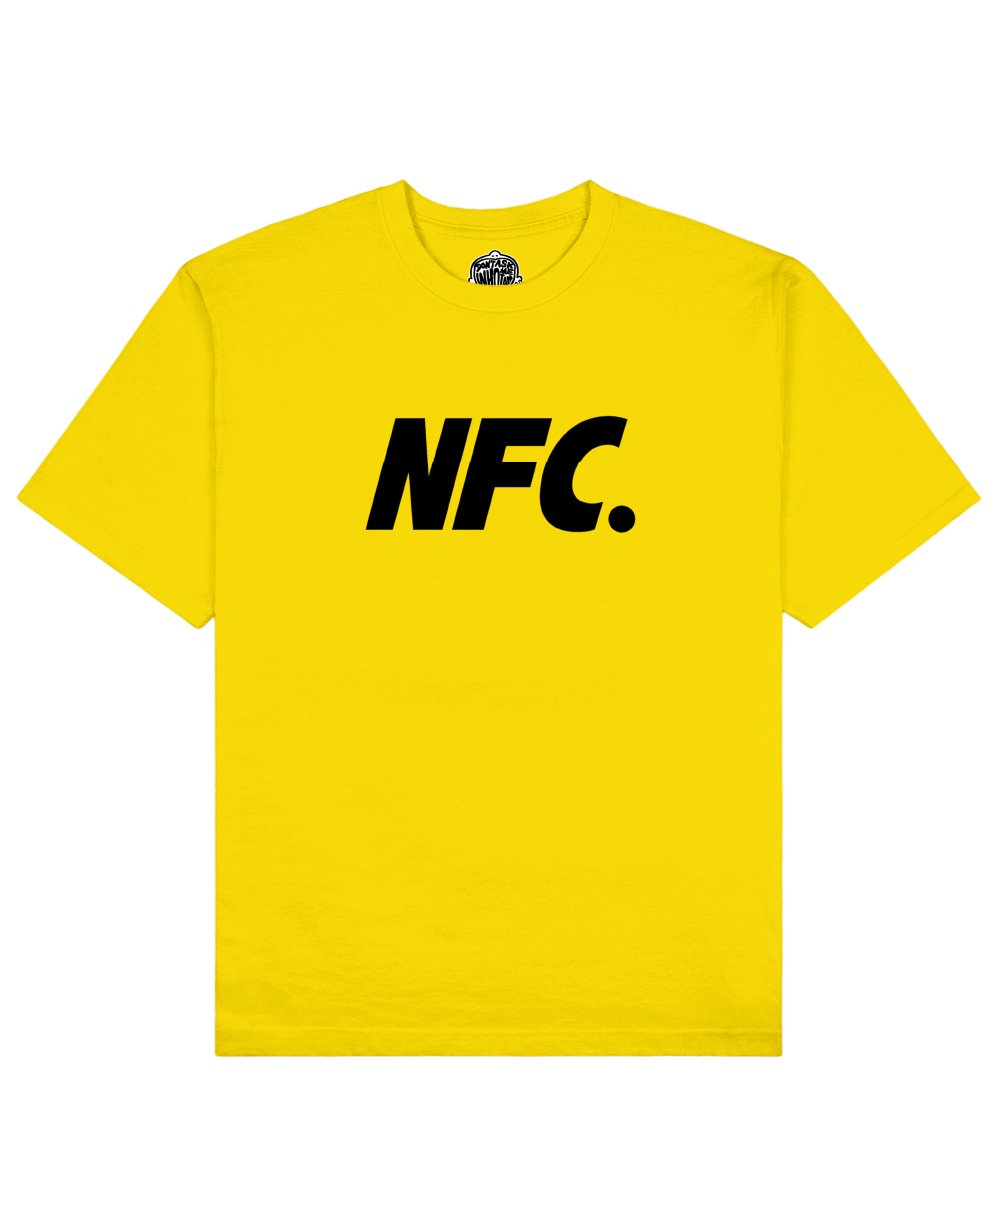 NFC Print T-shirt in Yellow - T-Shirts - Don't ask me who I am - BRANMA